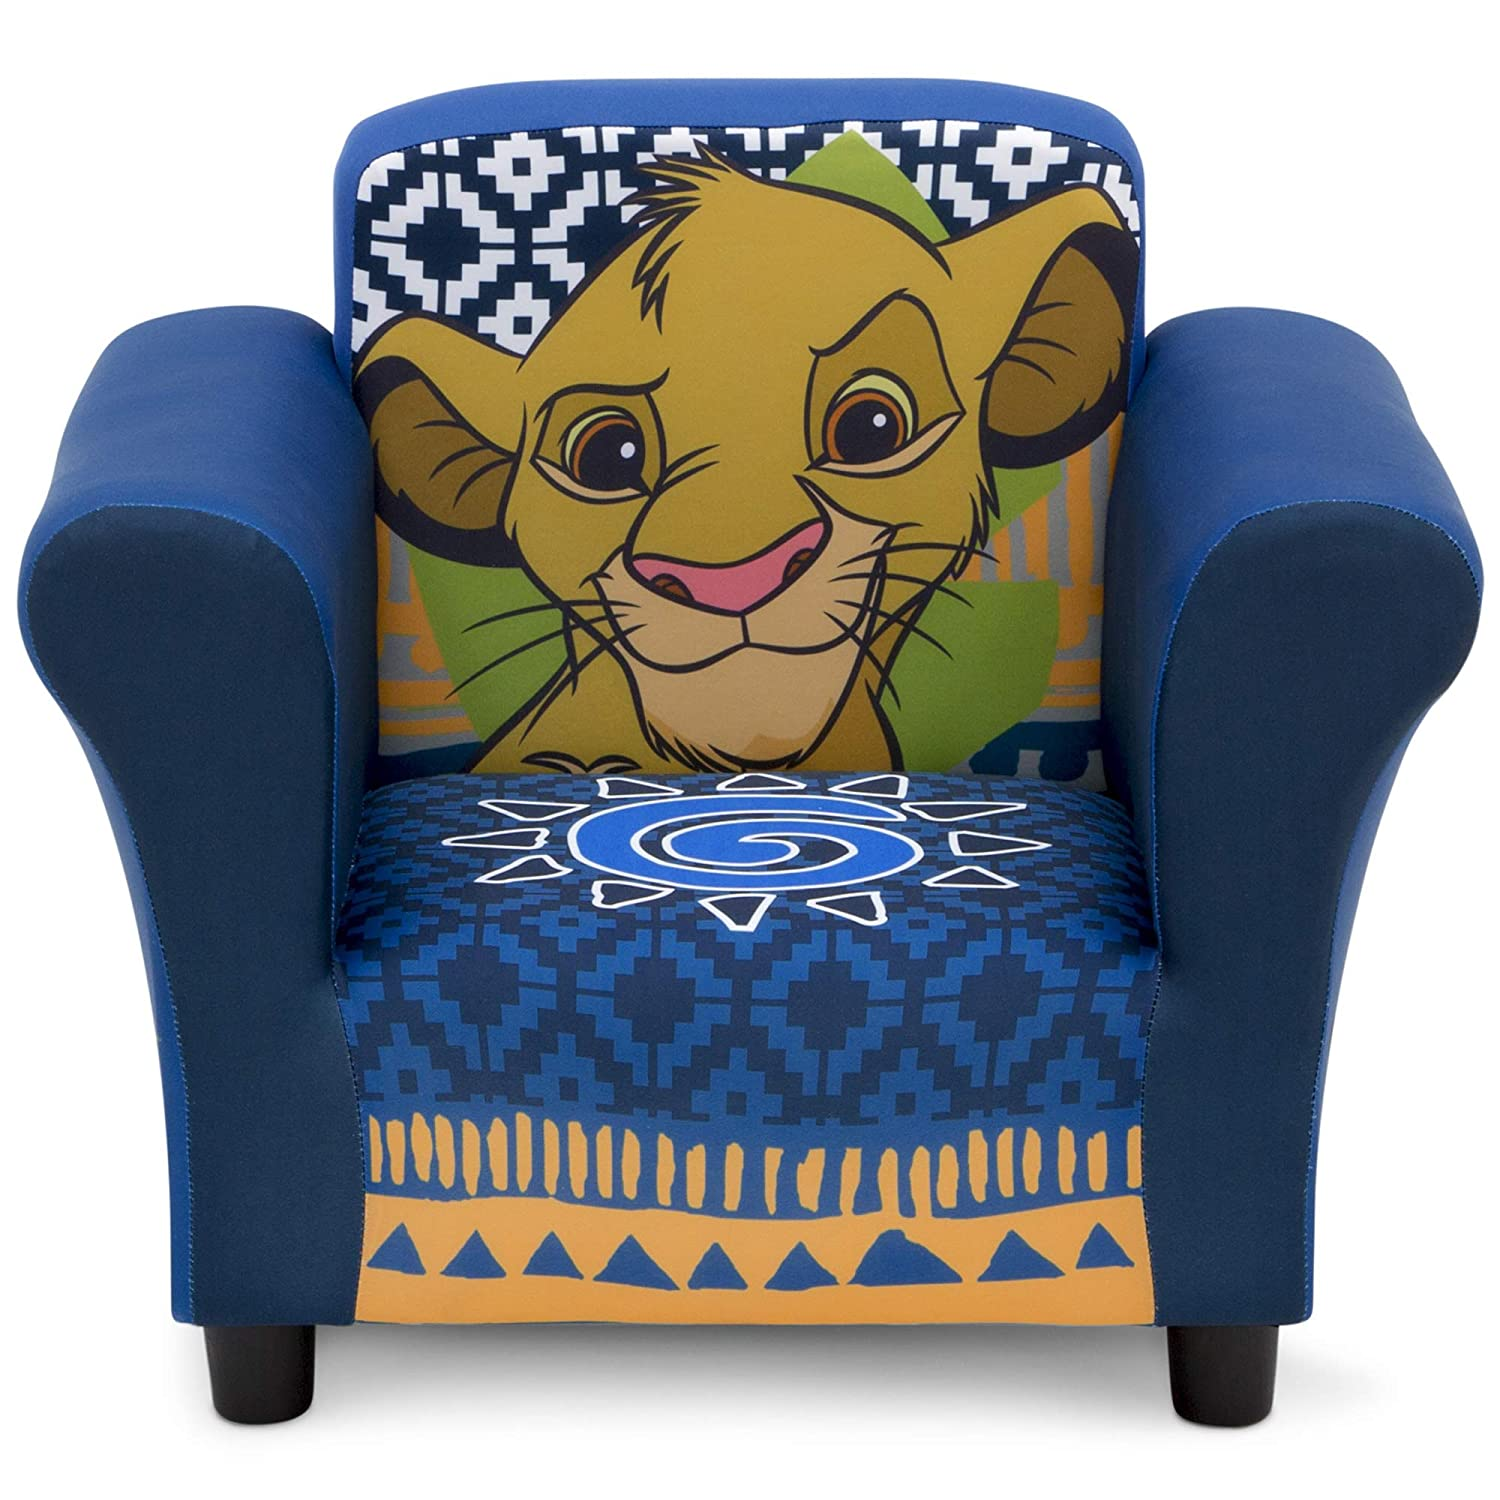 Delta Children Upholstered Chair, Disney, The Lion King